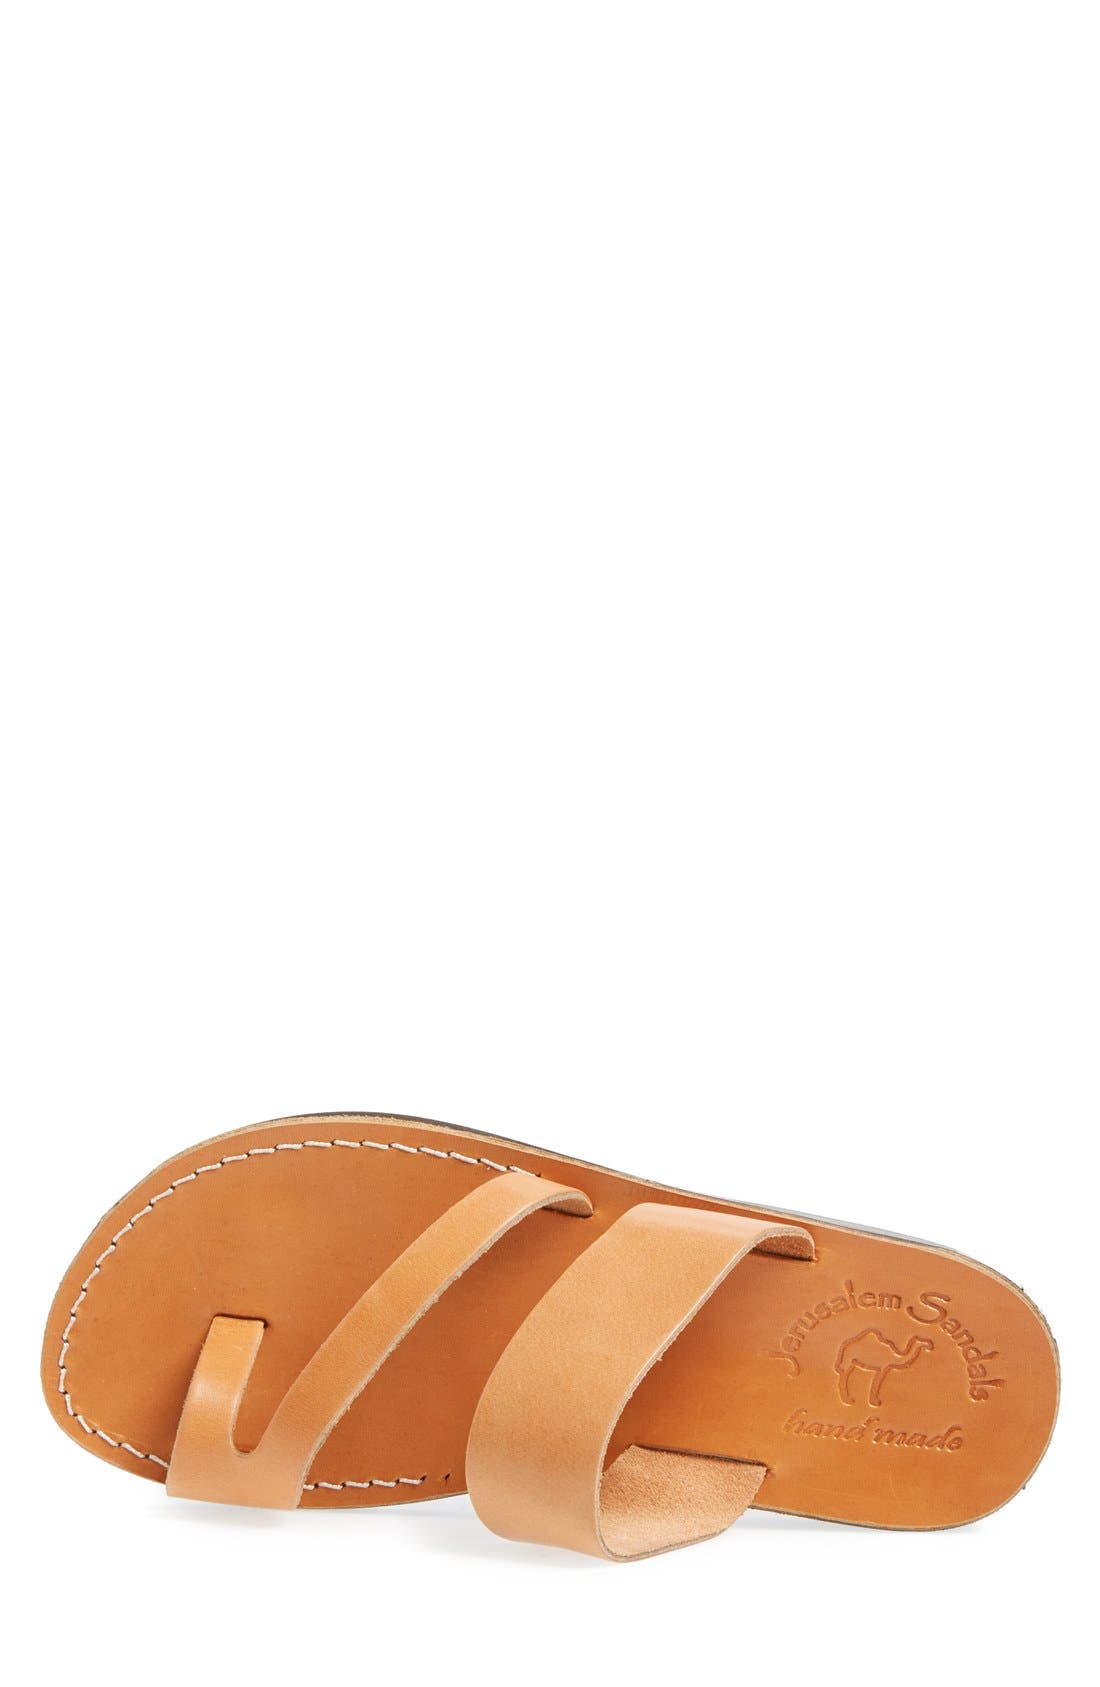 'Zohar' Leather Sandal,                             Alternate thumbnail 3, color,                             201